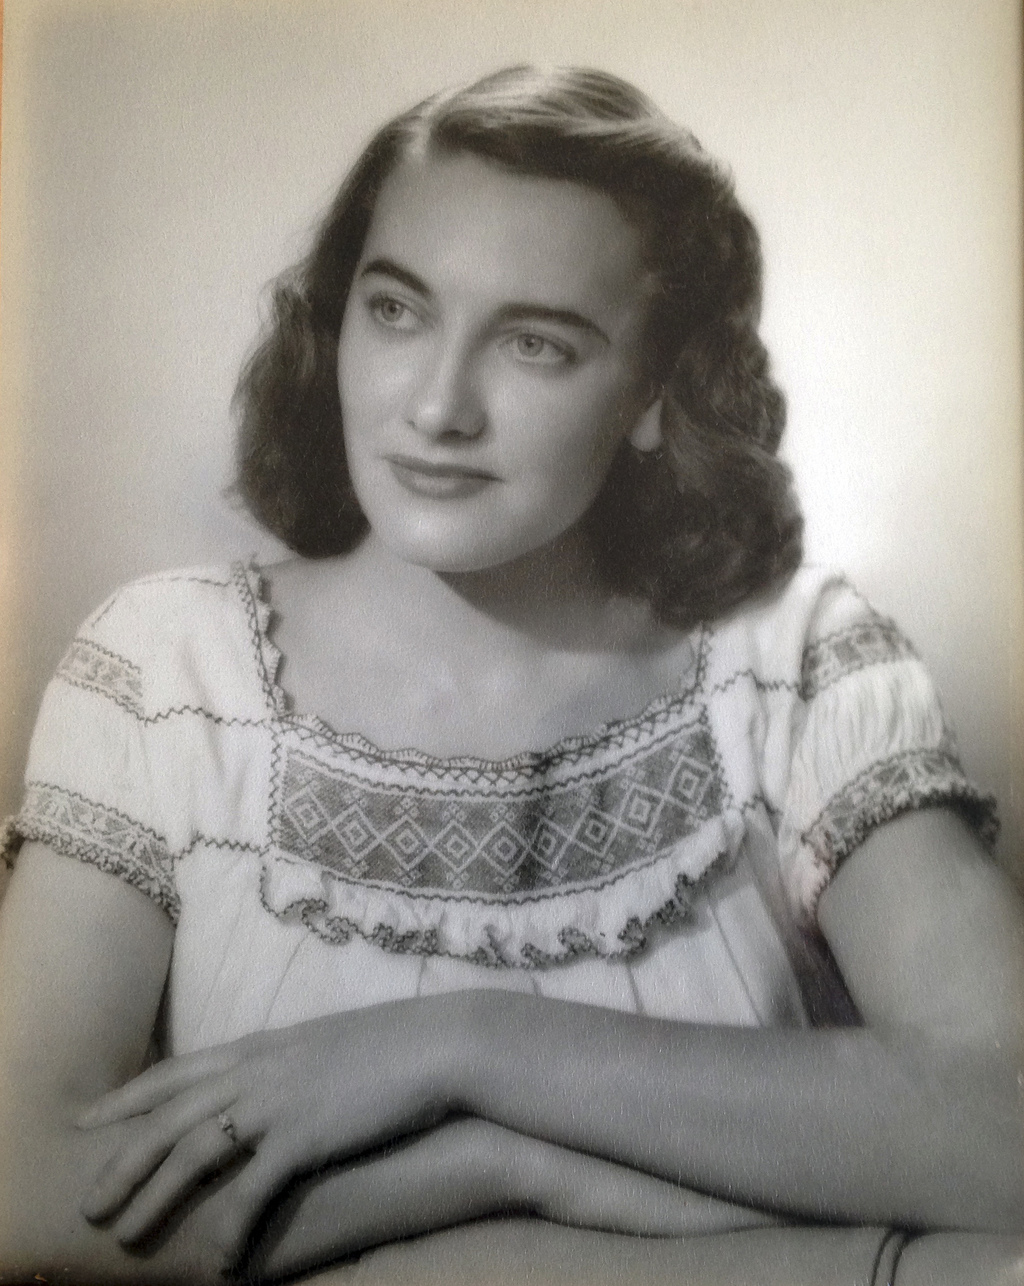 This undated photo provided by the Haley family shows Jean Haley, of Barrington, R.I., when she was about 25 years old. Jean and her tw...